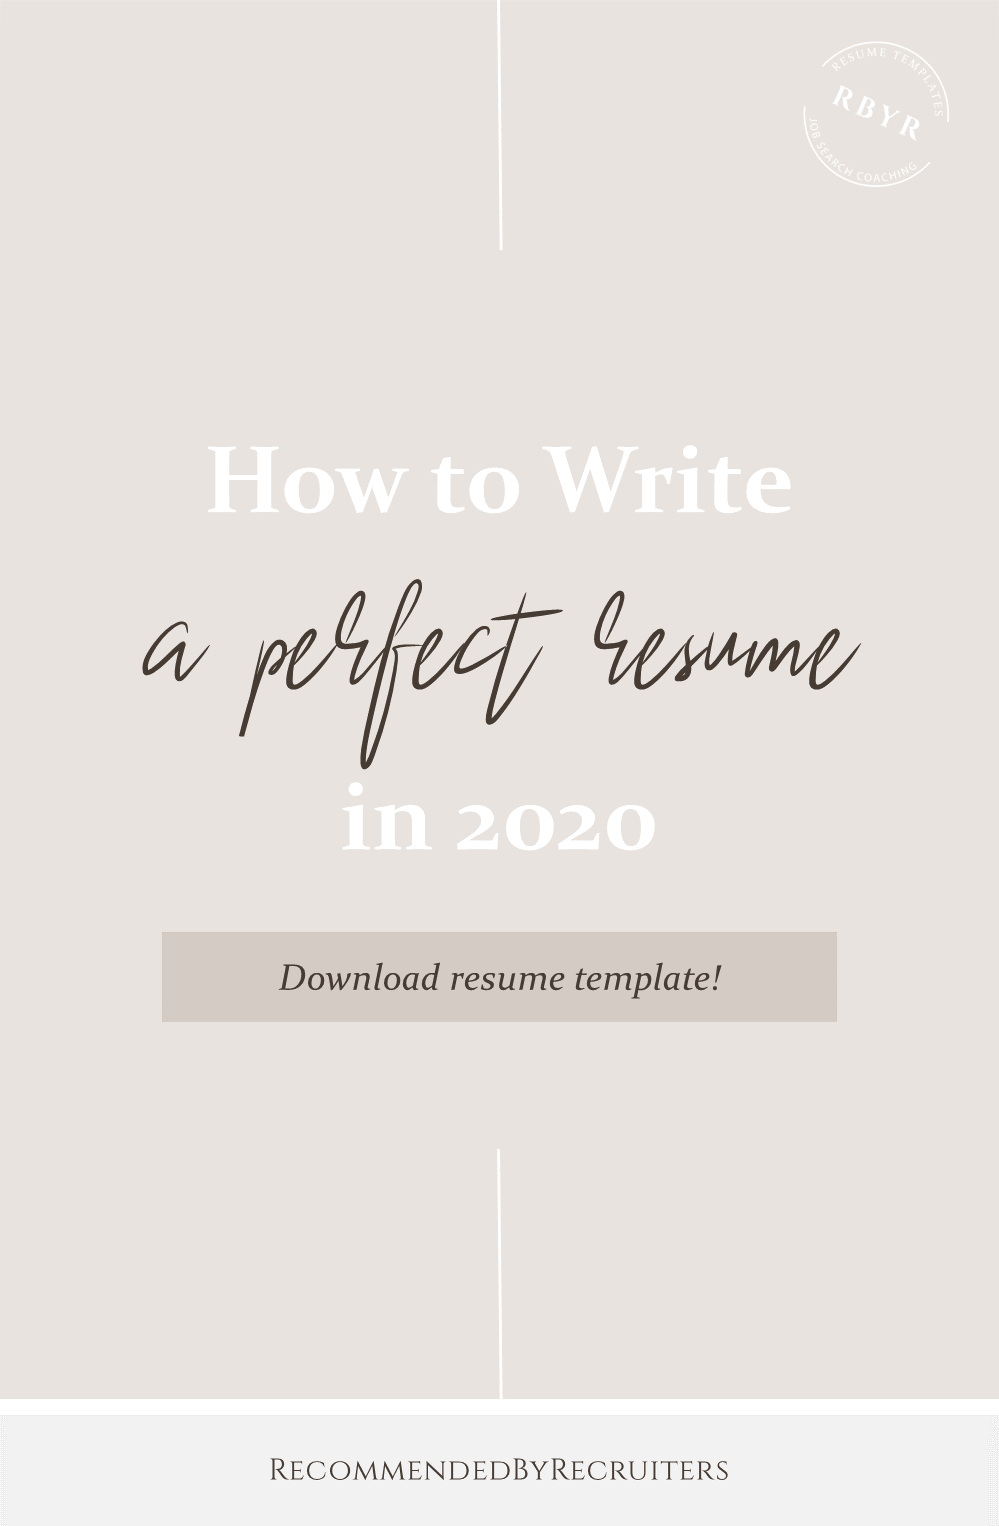 Write A Perfect Resume In 2020 Writing Instructions And Tips Step By Step Cv Resume Writing Guide In 2020 Resume Writing Resume Guided Writing